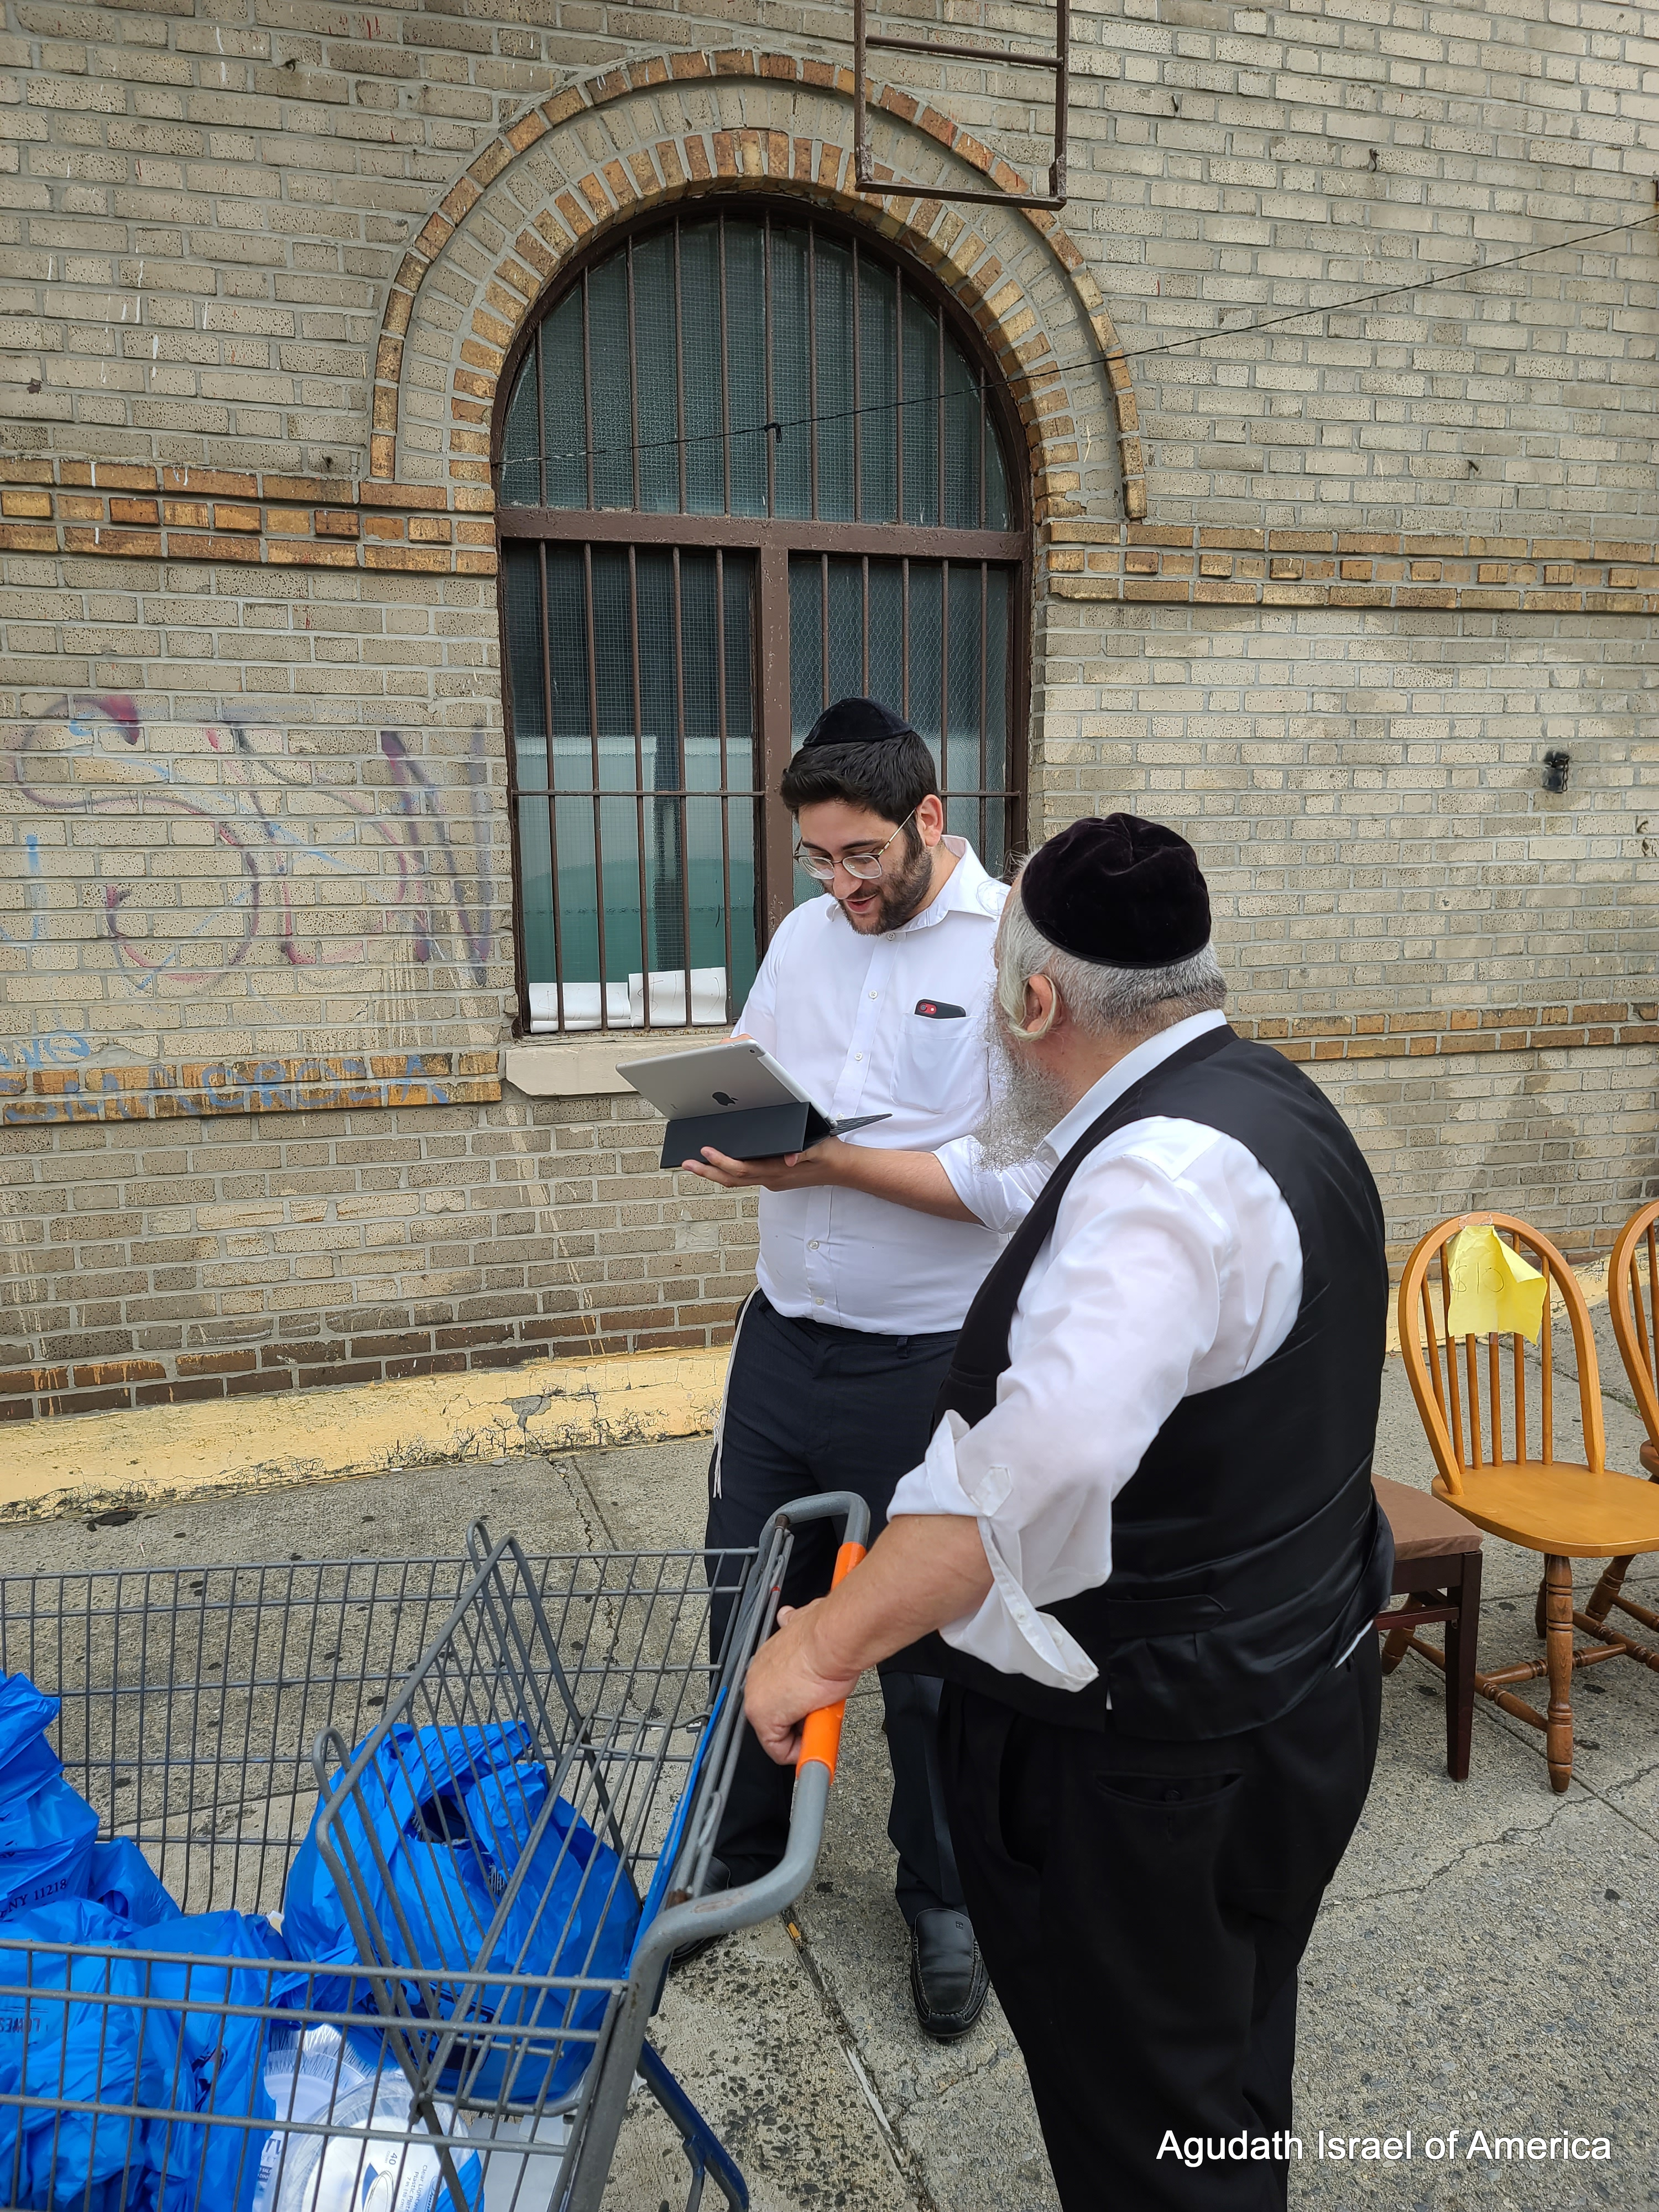 Agudath Israel's Census Pop-Up Drive in Borough Park